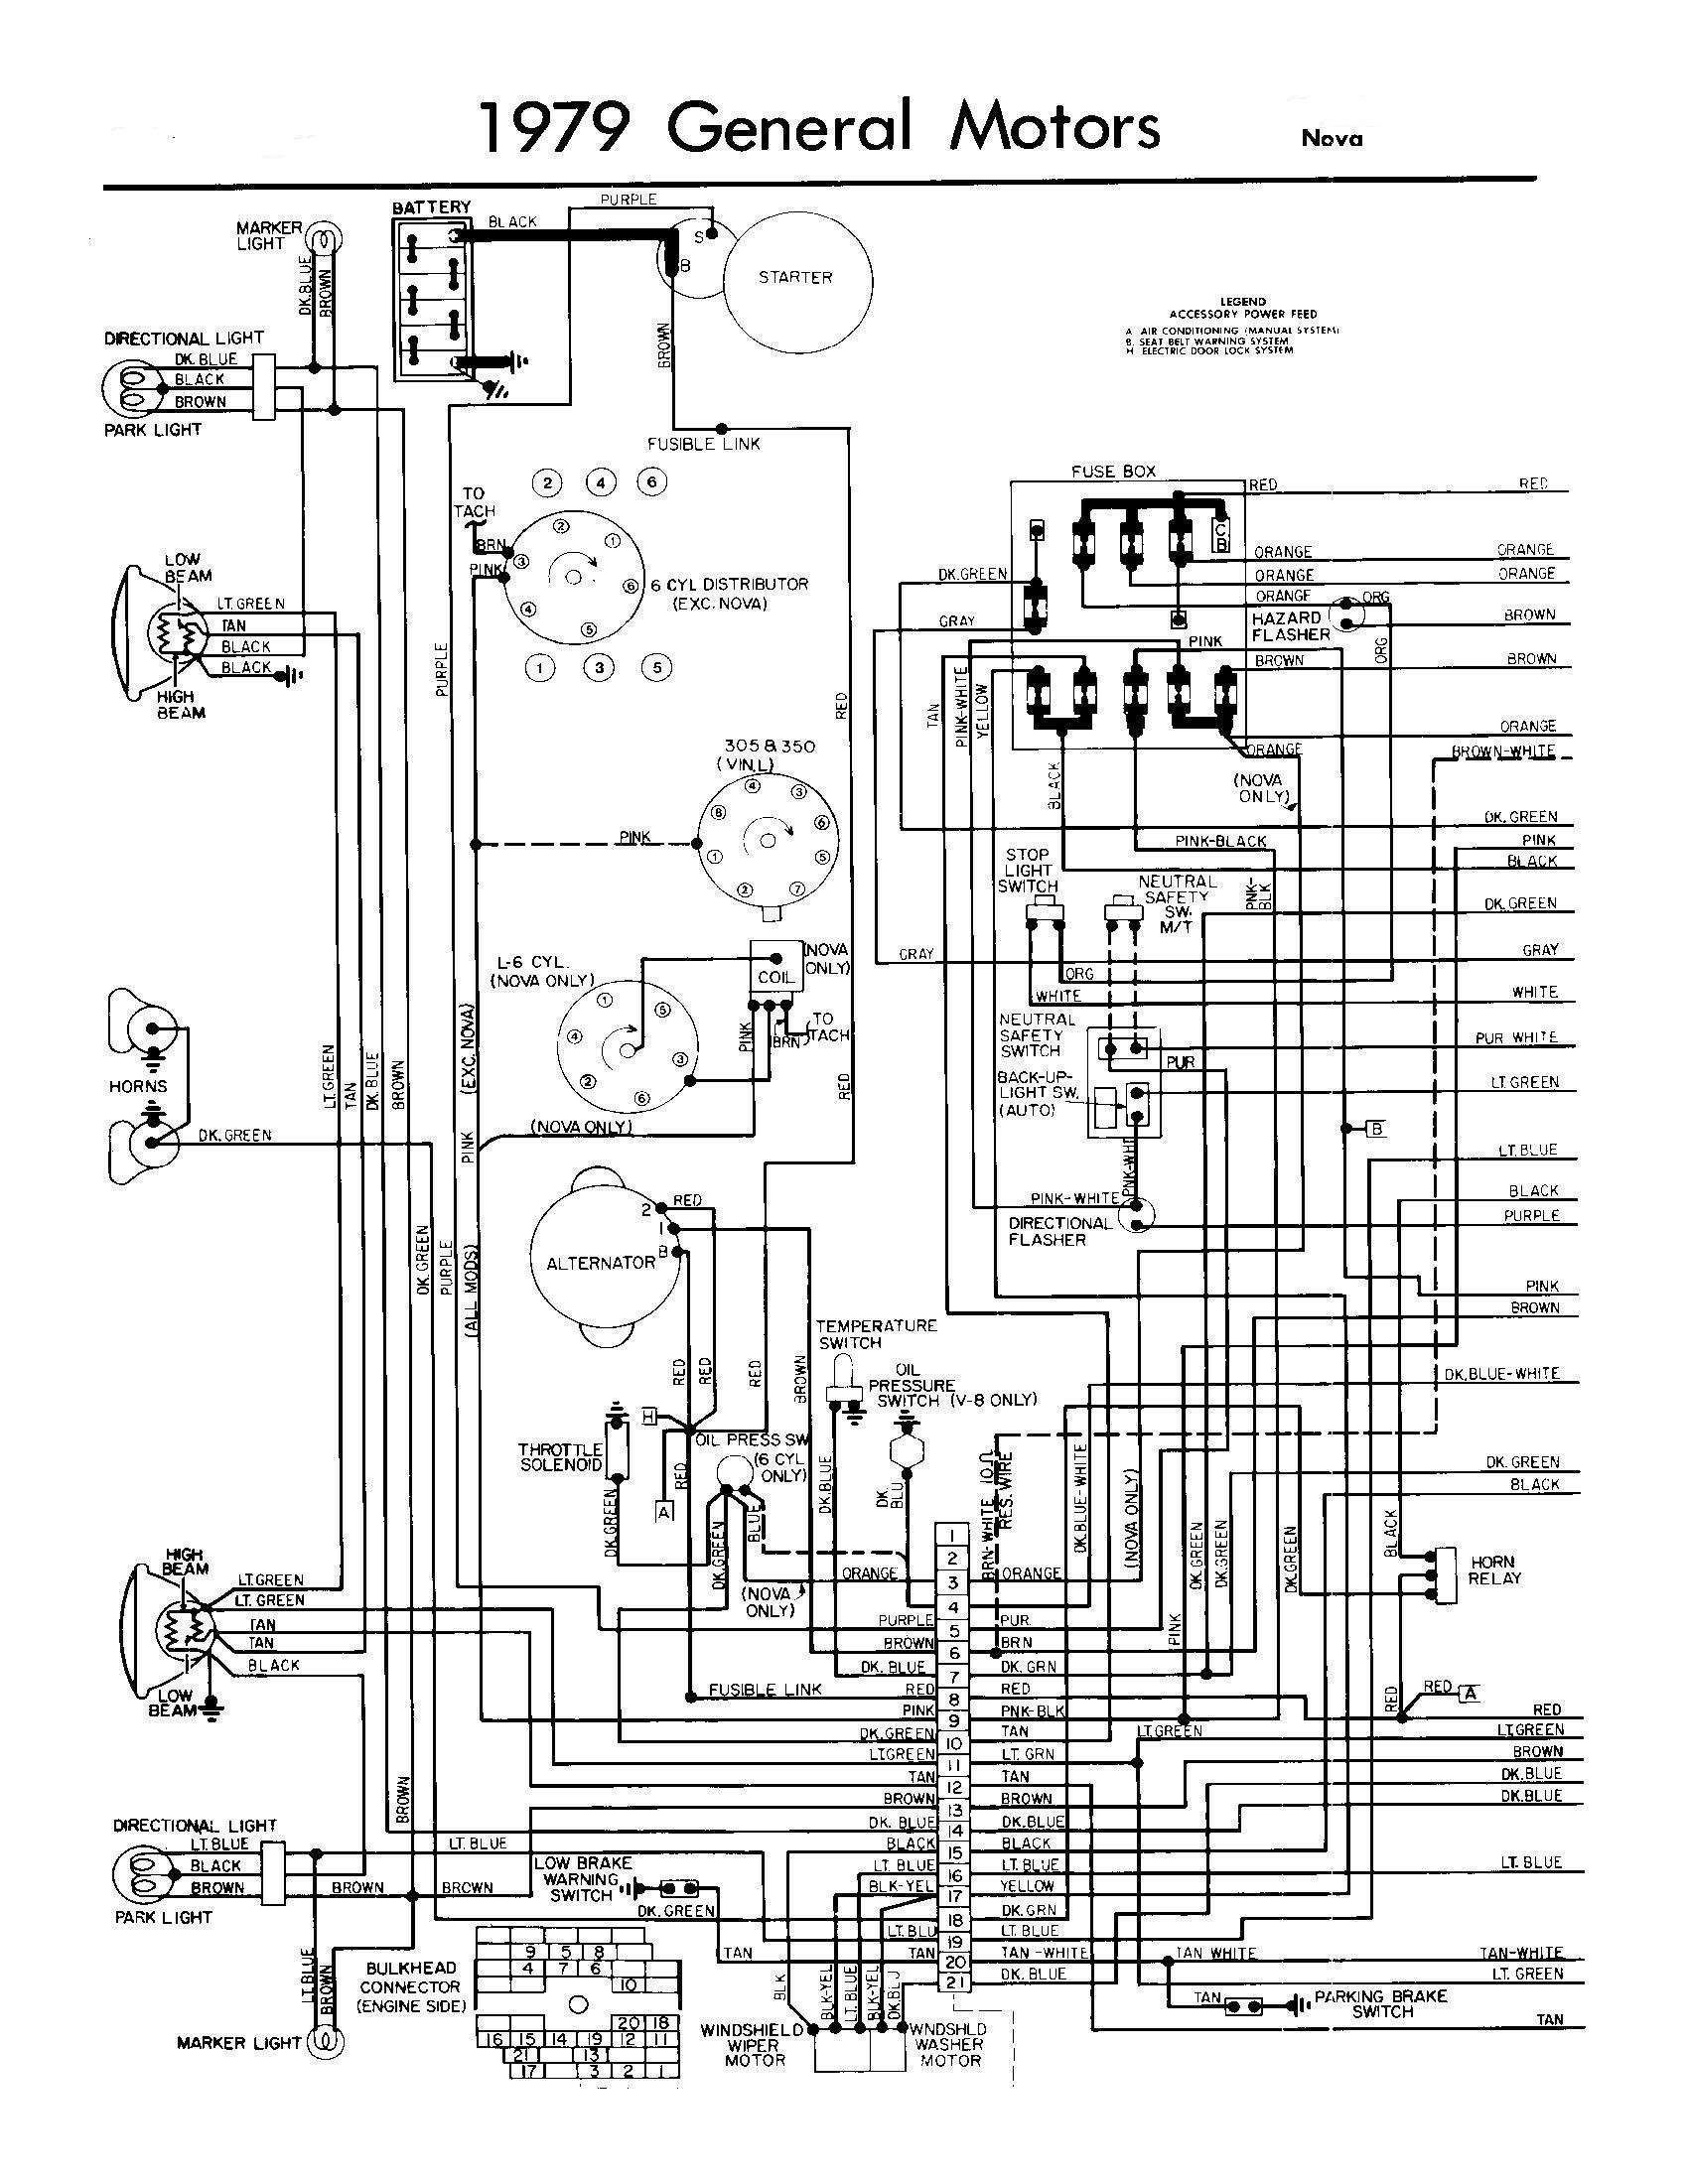 Wiring Diagram Chevy Trucks 1979 Chevy Truck 79 Chevy Truck